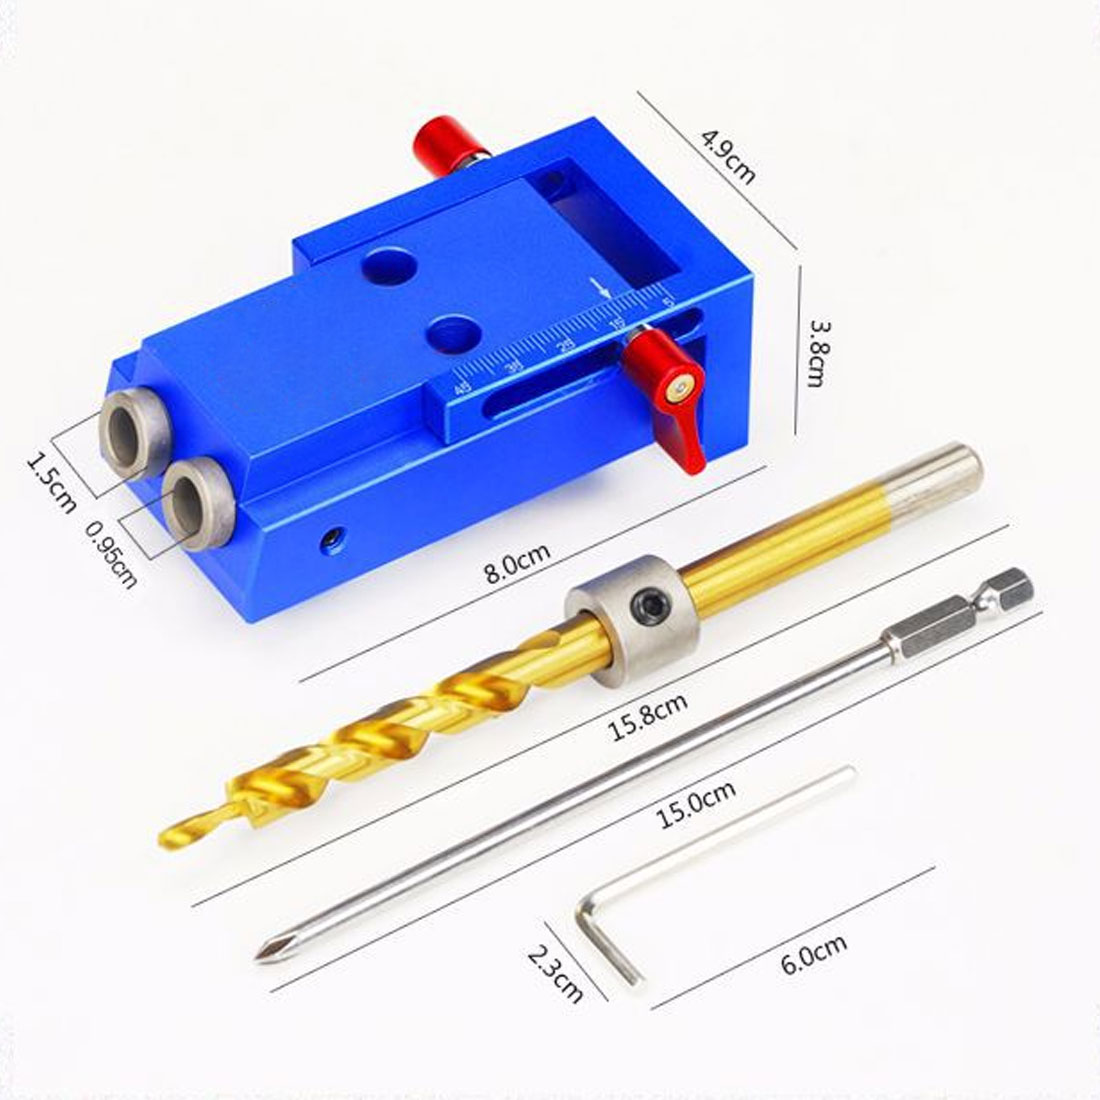 Woodworking Pocket Hole Jig Kit 6/8/10mm Angle Drill Guide Set Hole Puncher Locator Jig Drill Bit Set For DIY Carpentry Tools шкатулки для украшений lc designs co ltd lcd 73111